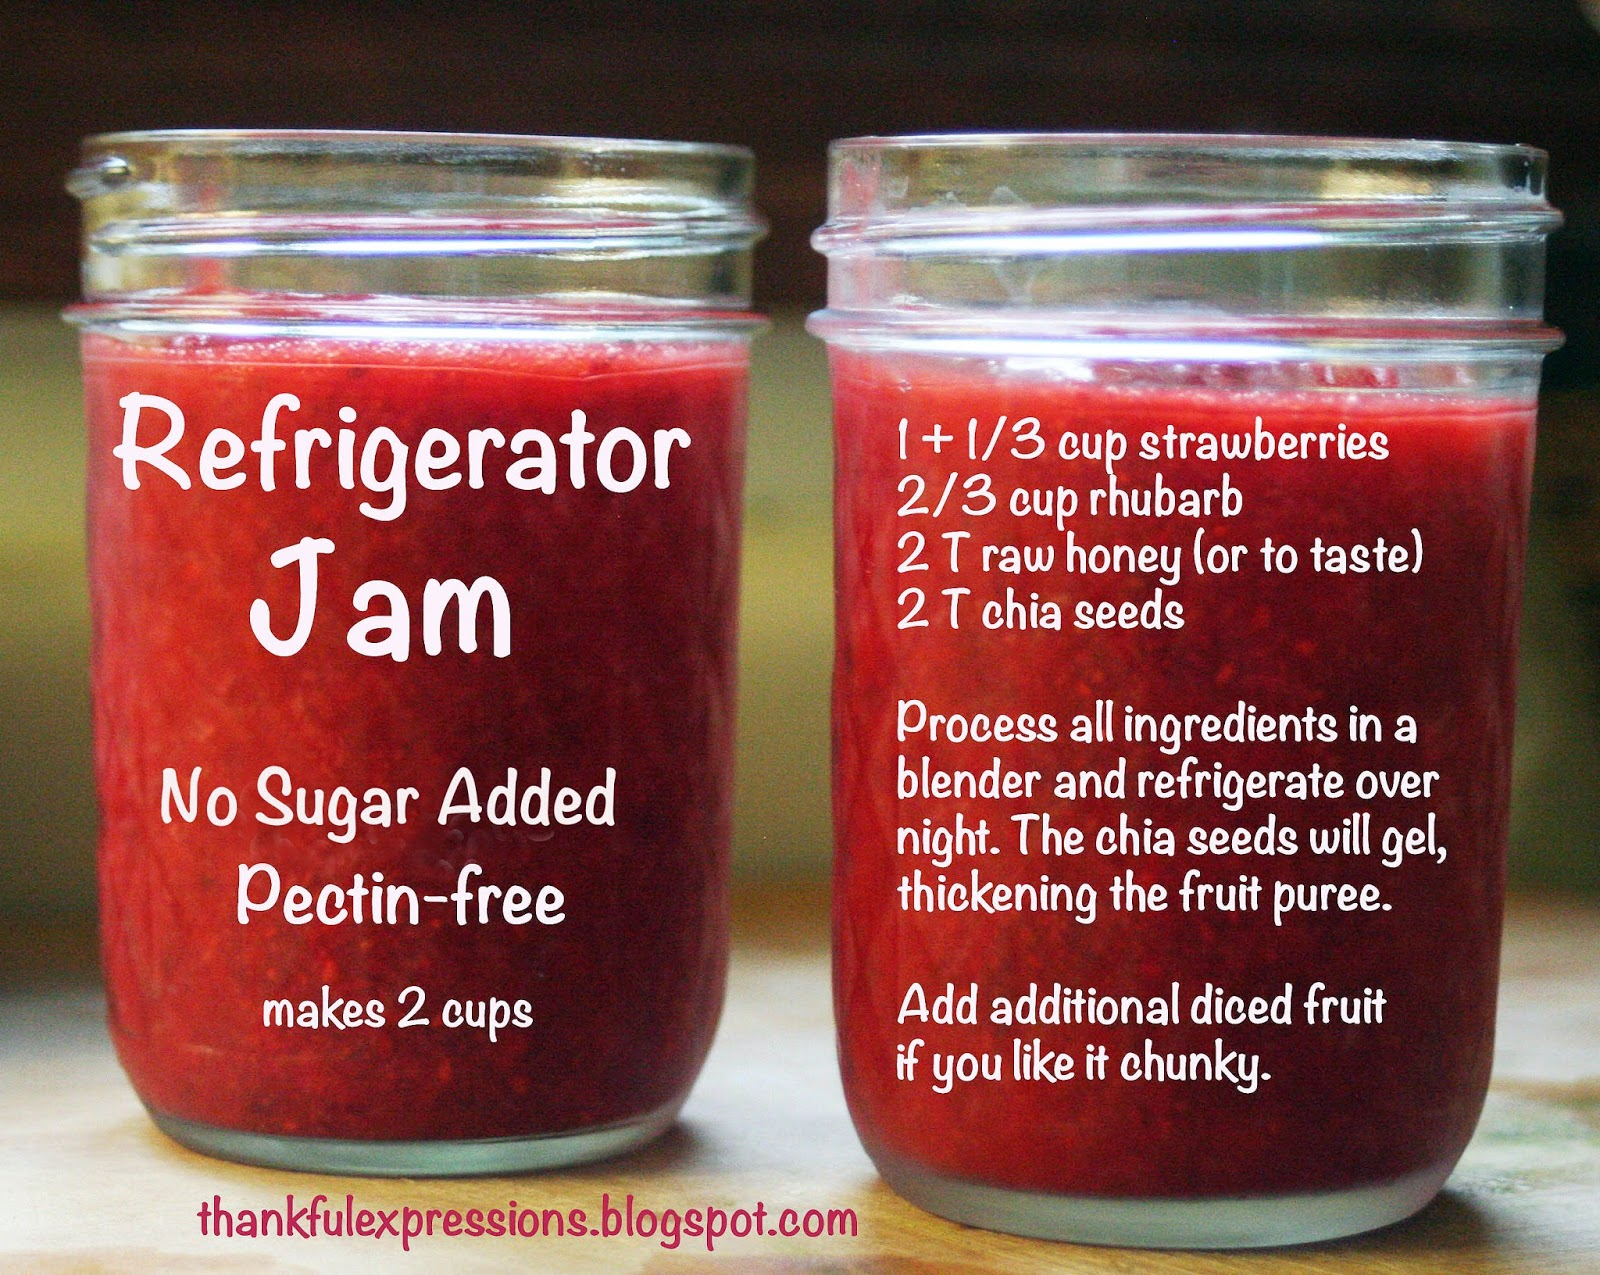 Thankful Expressions: Strawberry-Rhubarb Refrigerator Jam